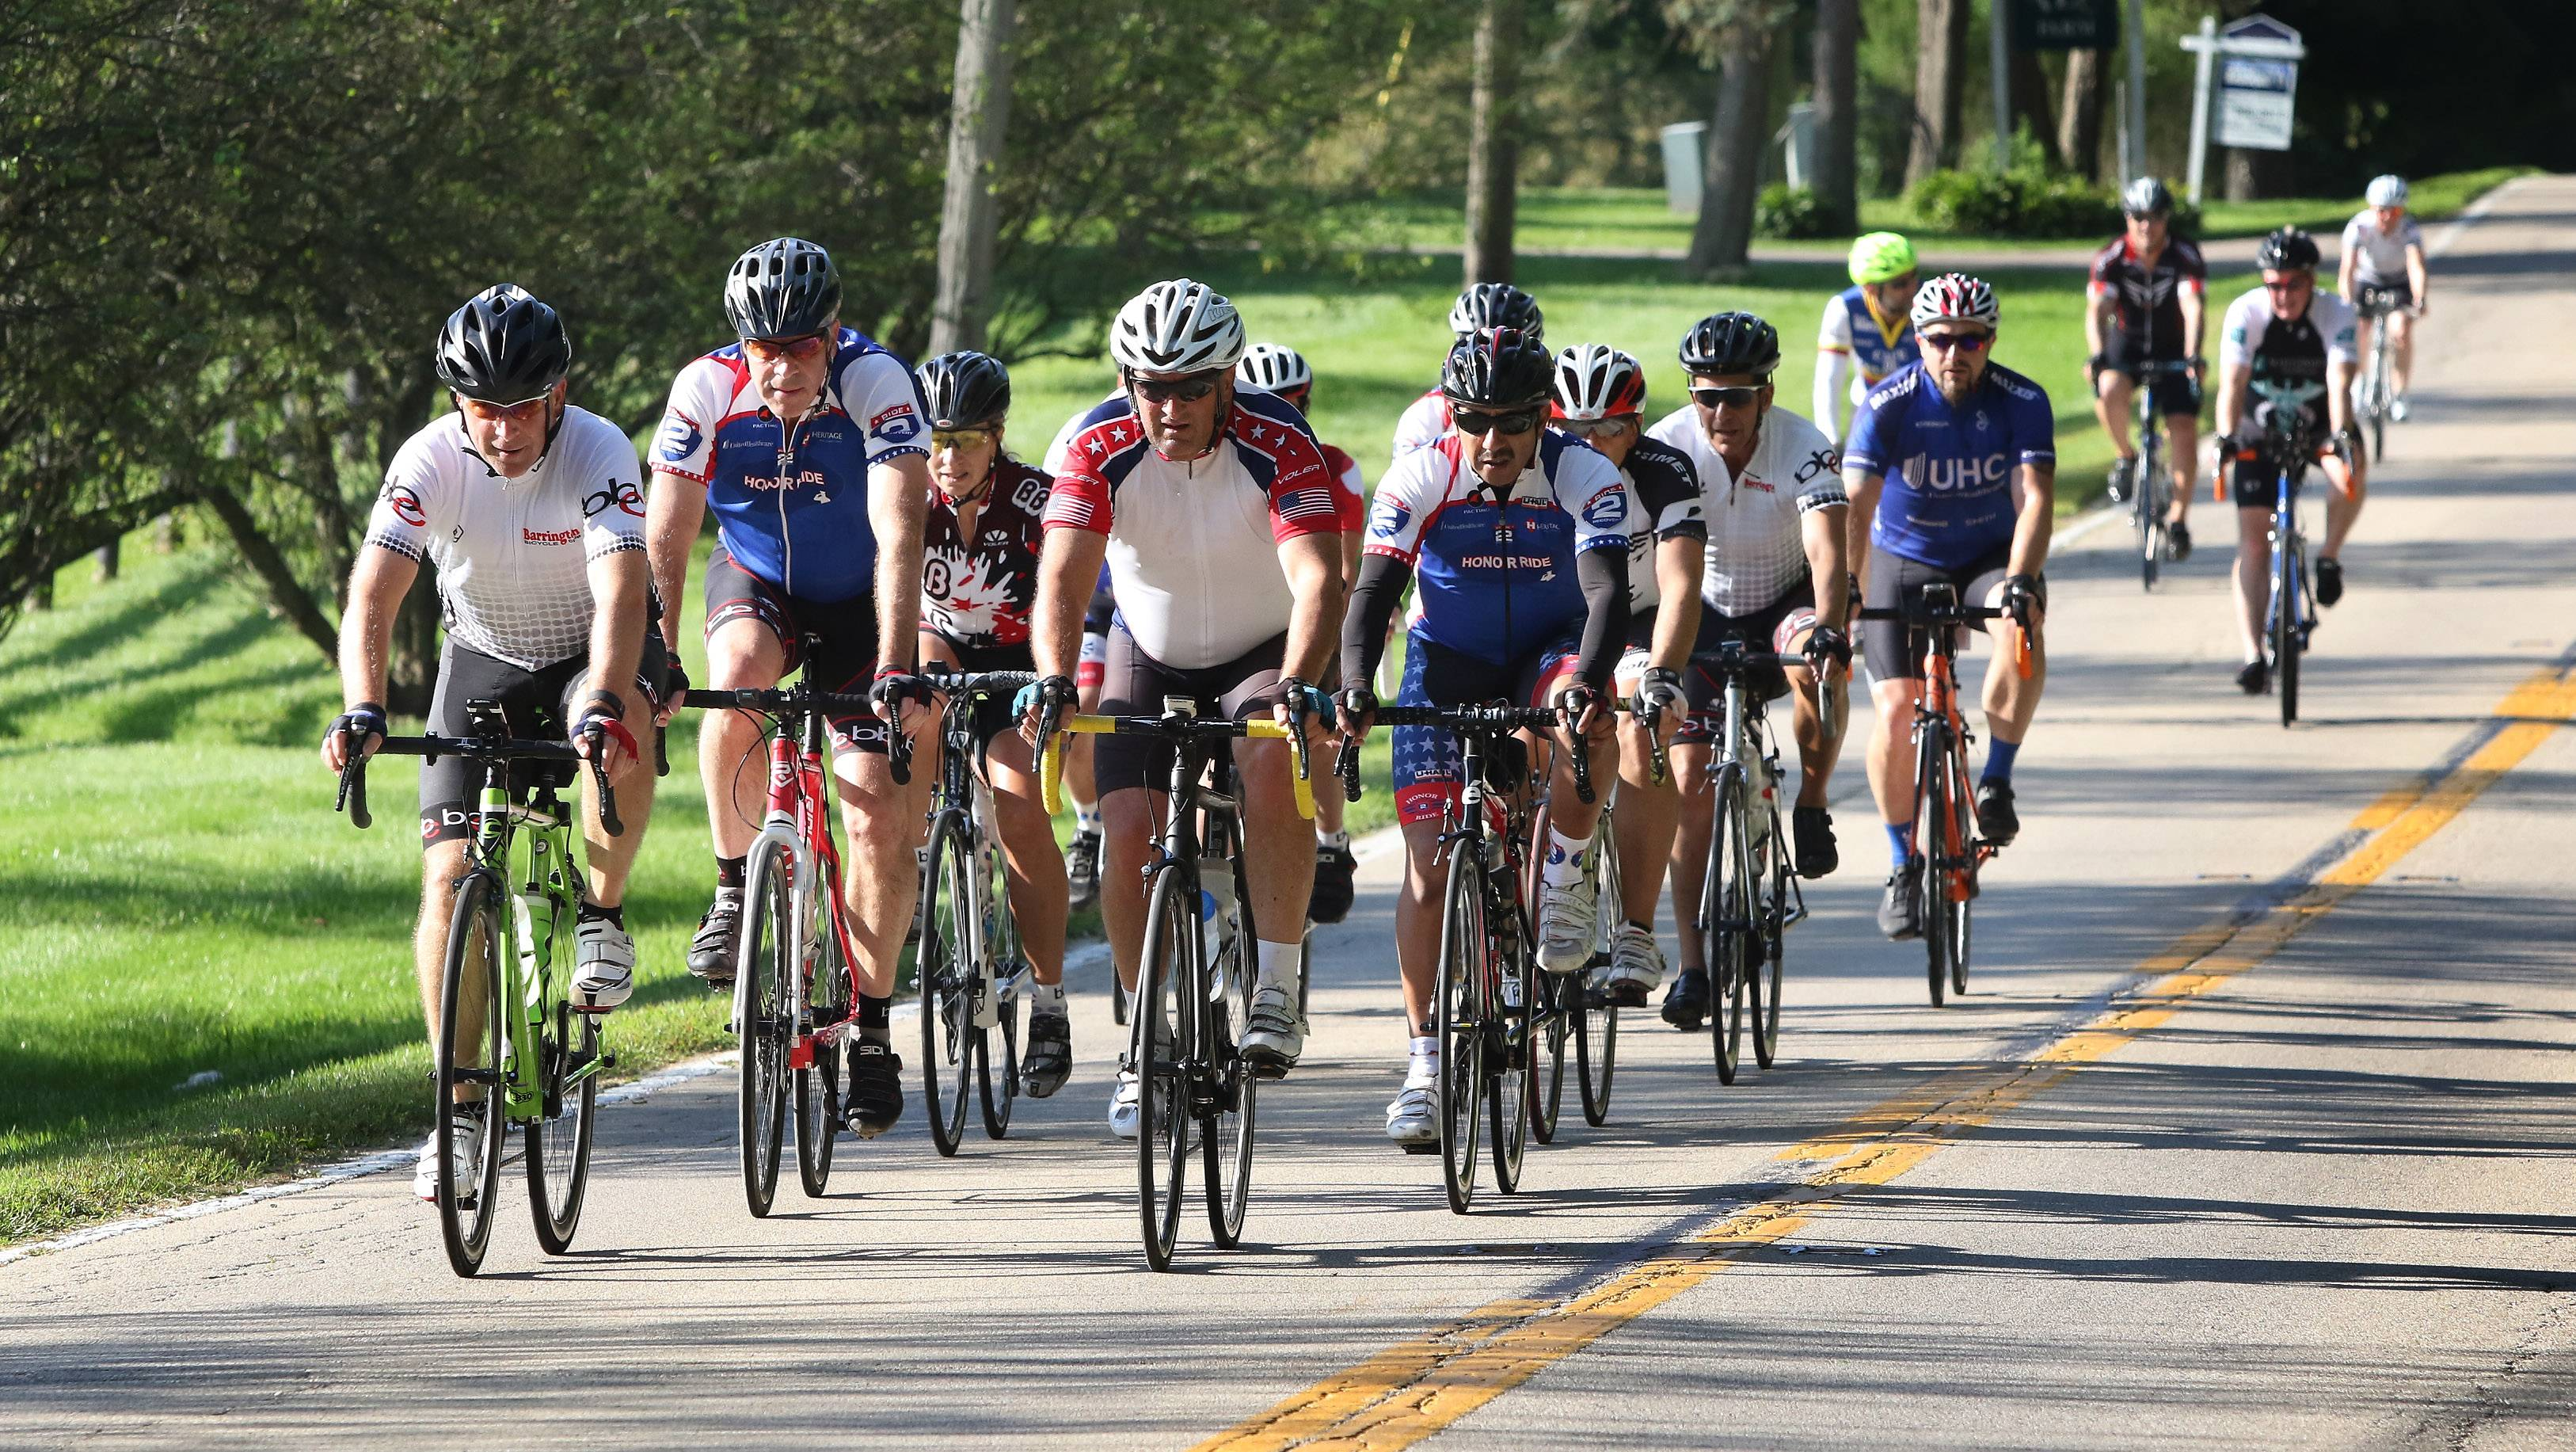 Cyclists make their way along Old Sutton Road during the 2017 Project Hero Barrington Honor Ride in Barrington Hills last August. The 2018 ride is scheduled for Aug. 12.